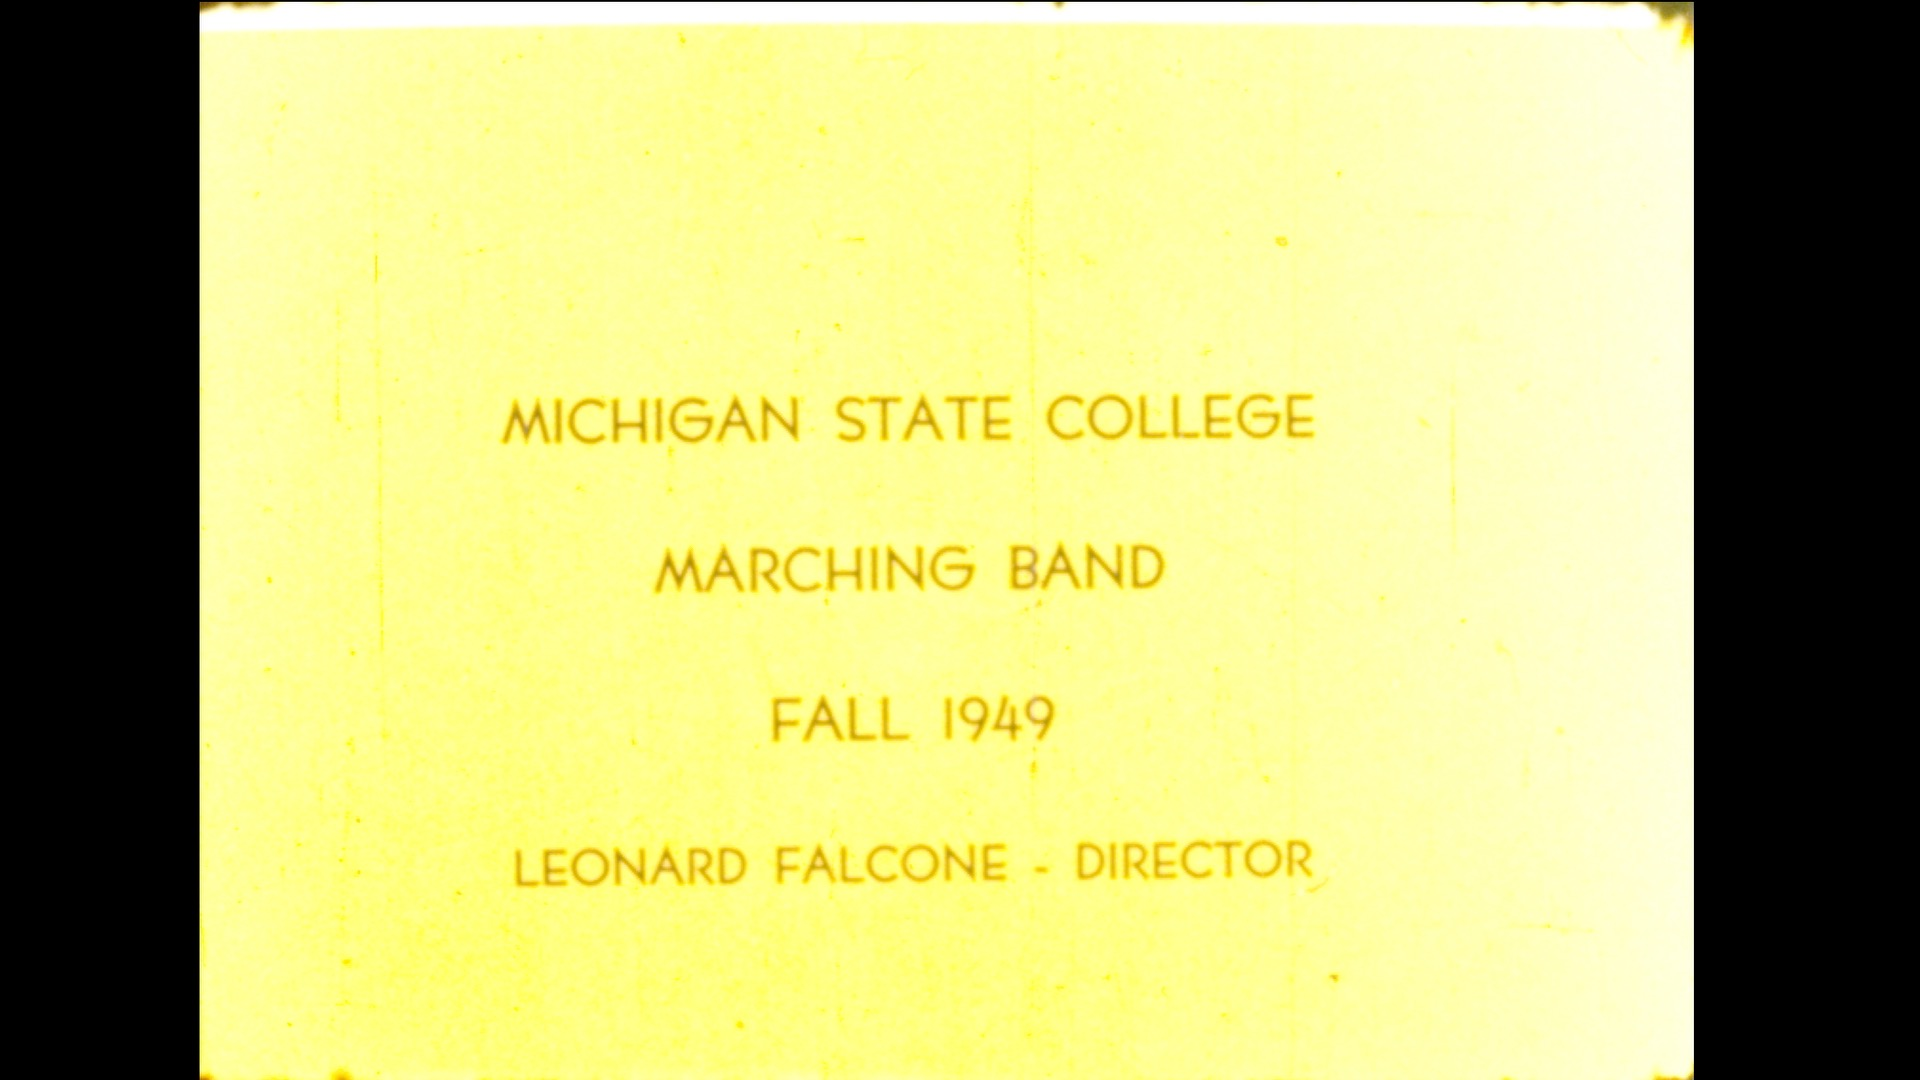 MSC Marching Band, 1949 (part 1 of 2)